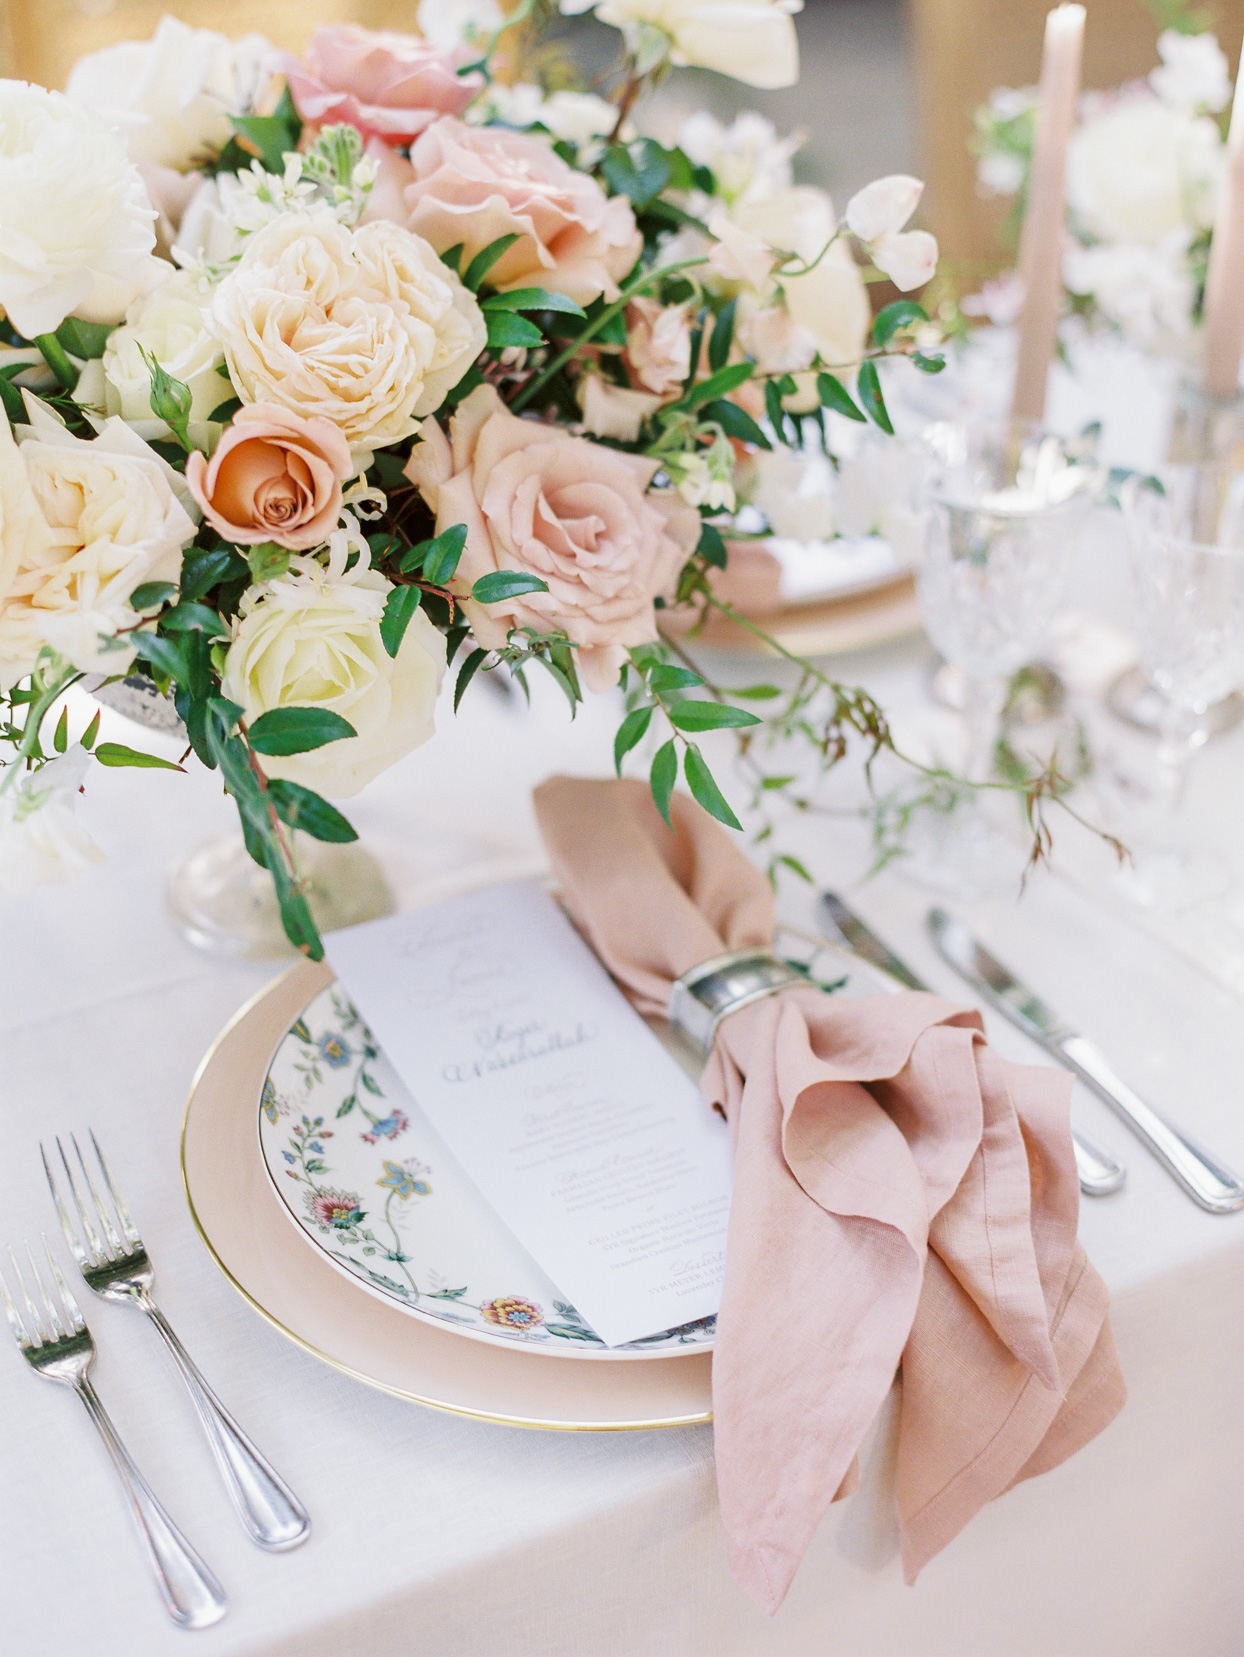 white and blush place settings